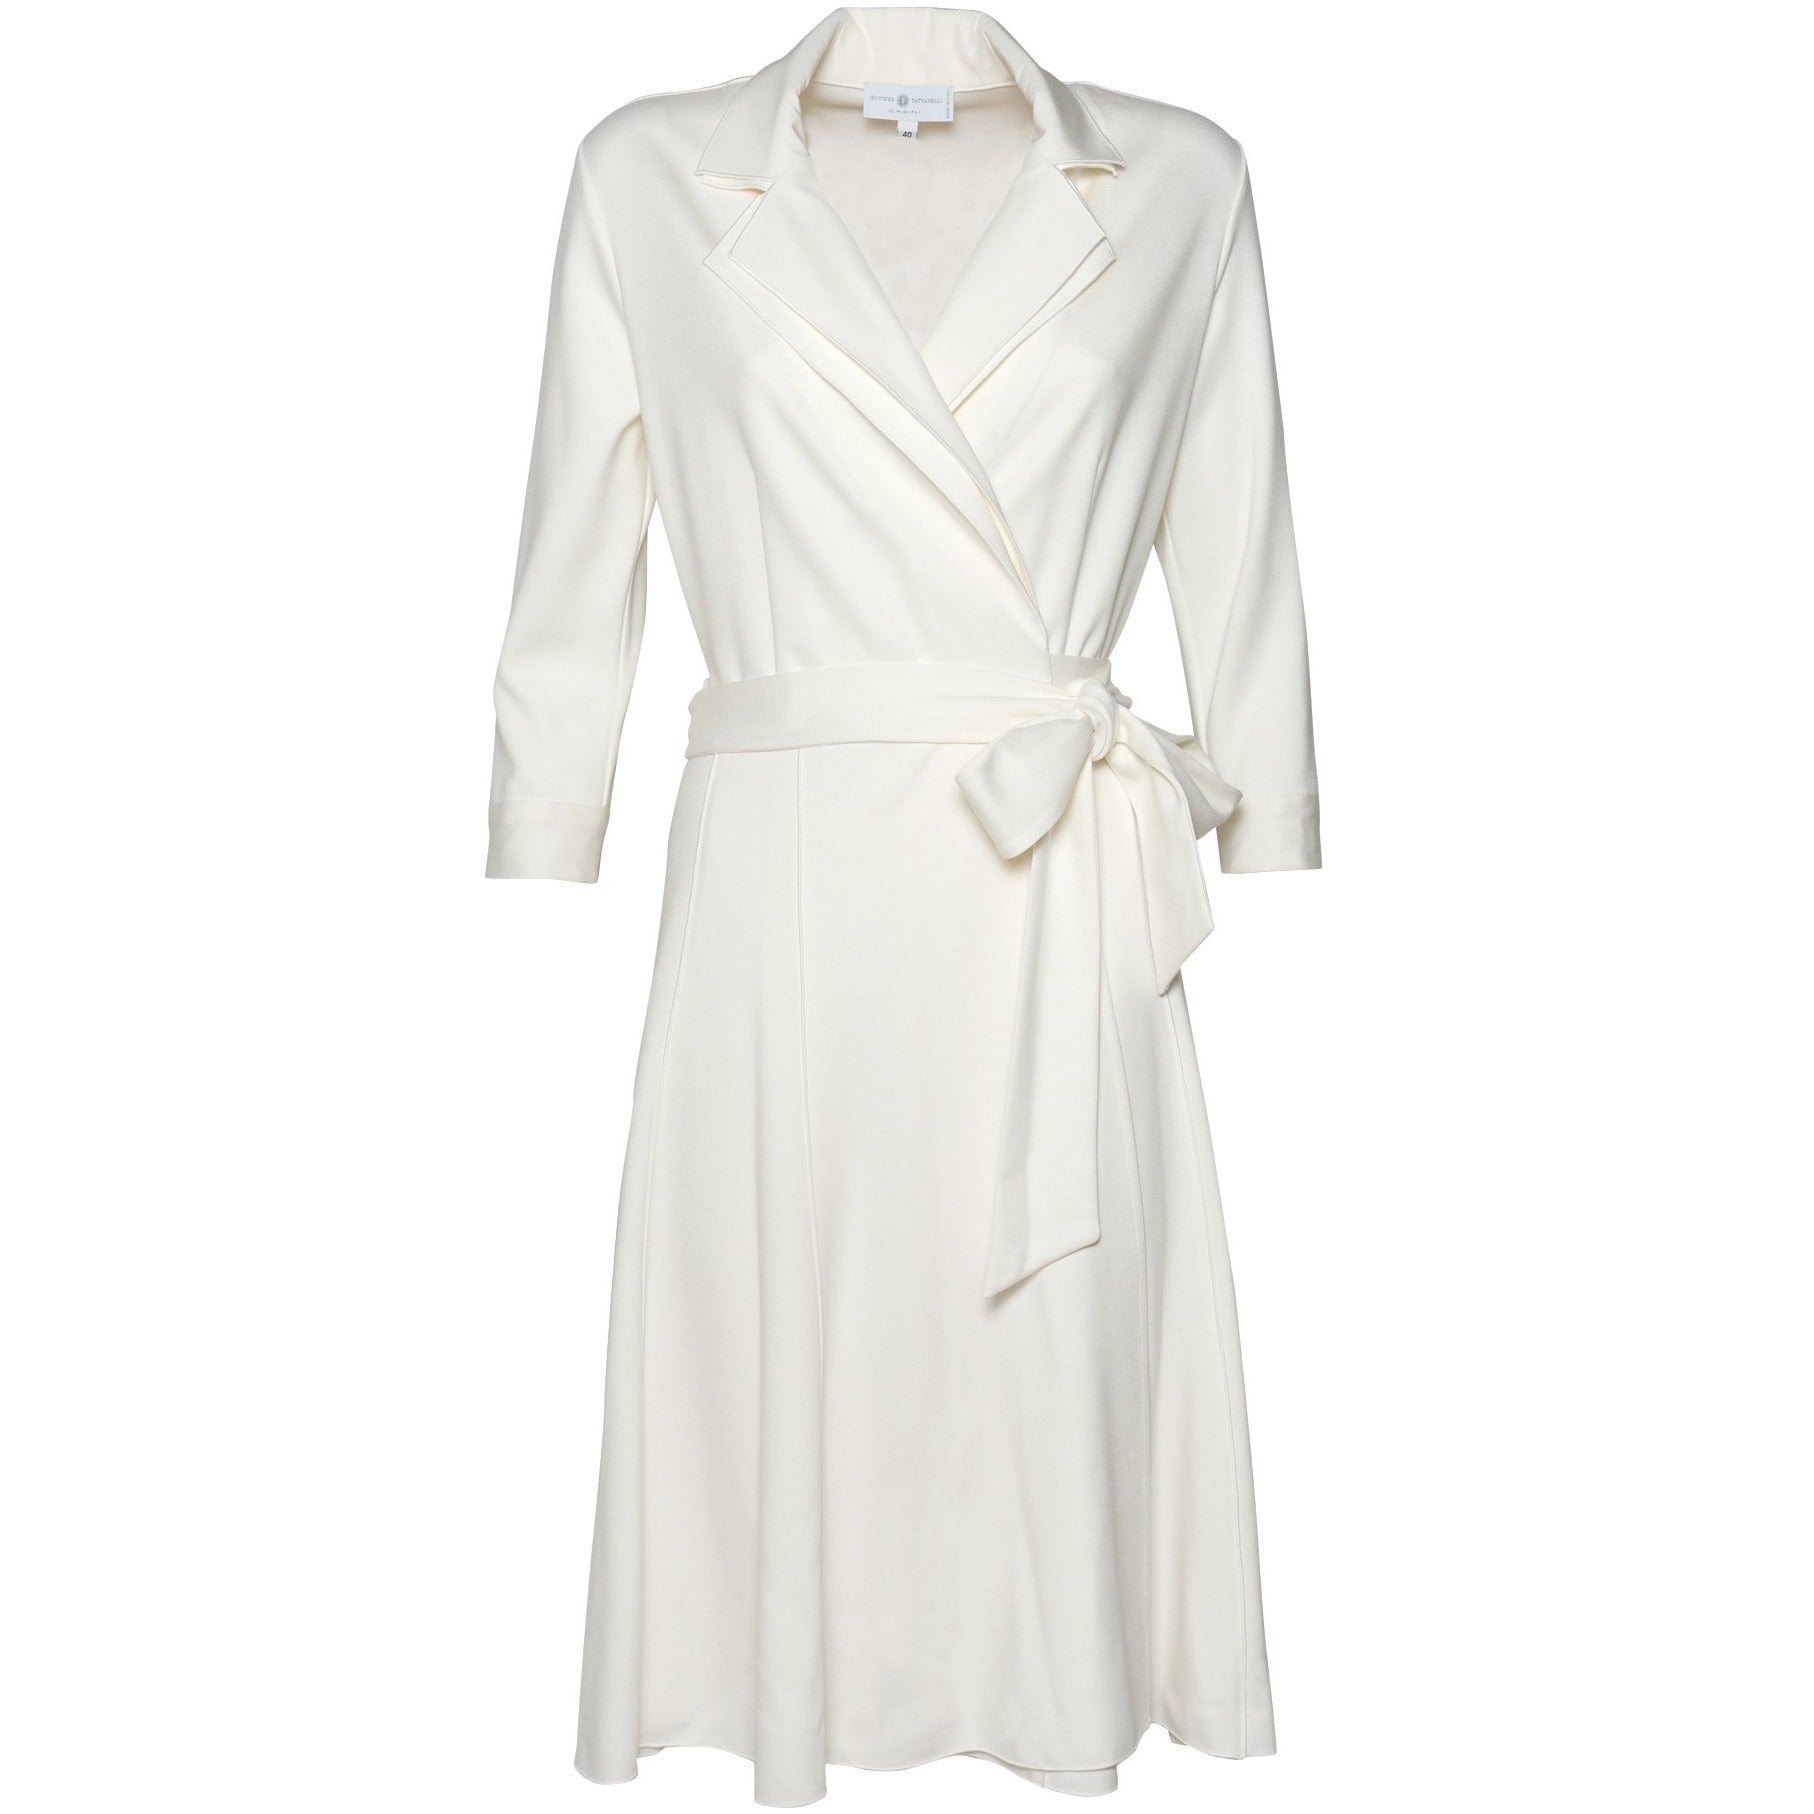 Layered Collar Wrap Dress in White